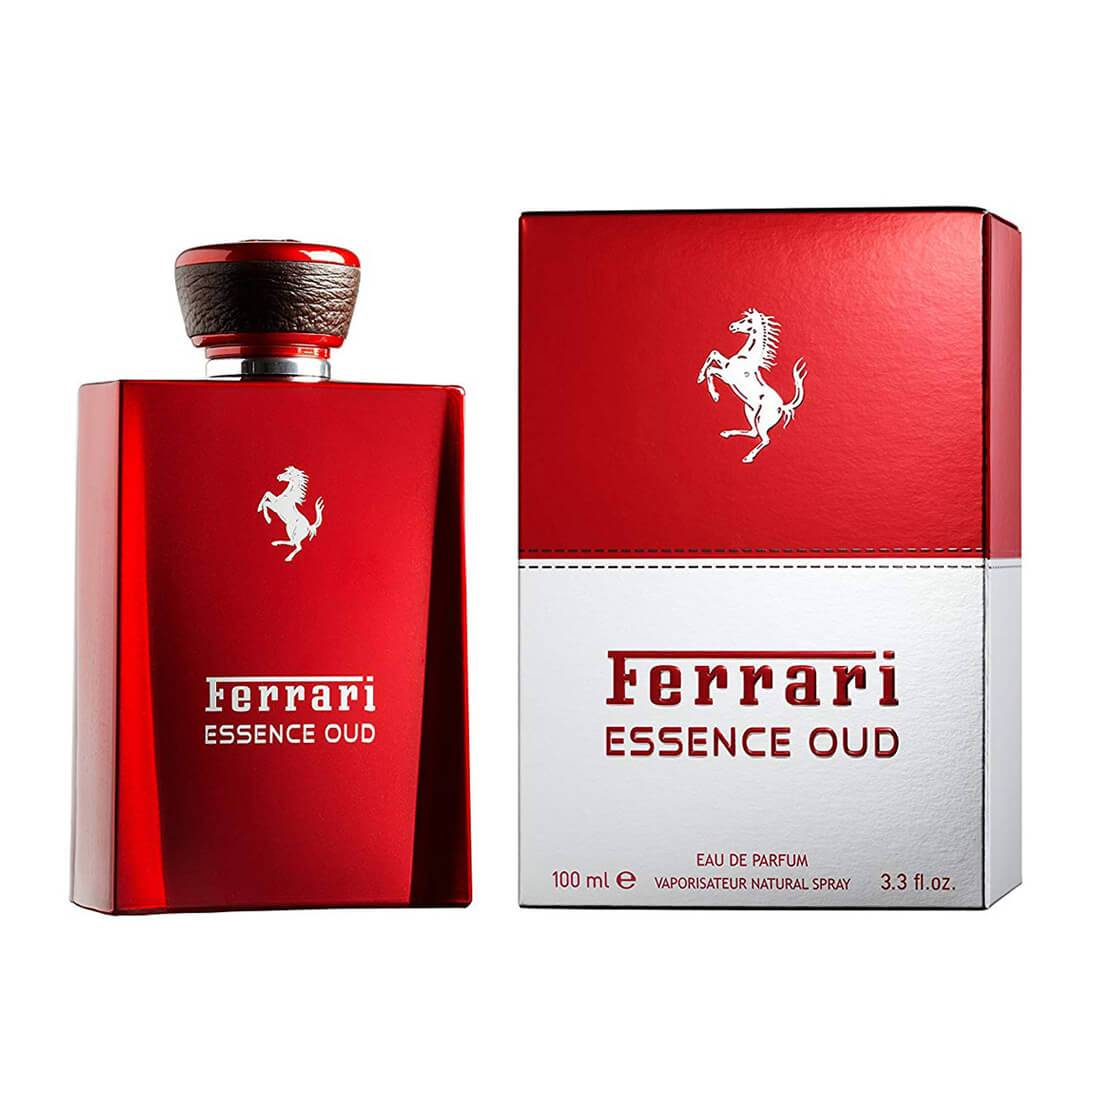 Ferrari Essence Oud Perfume - 100ml